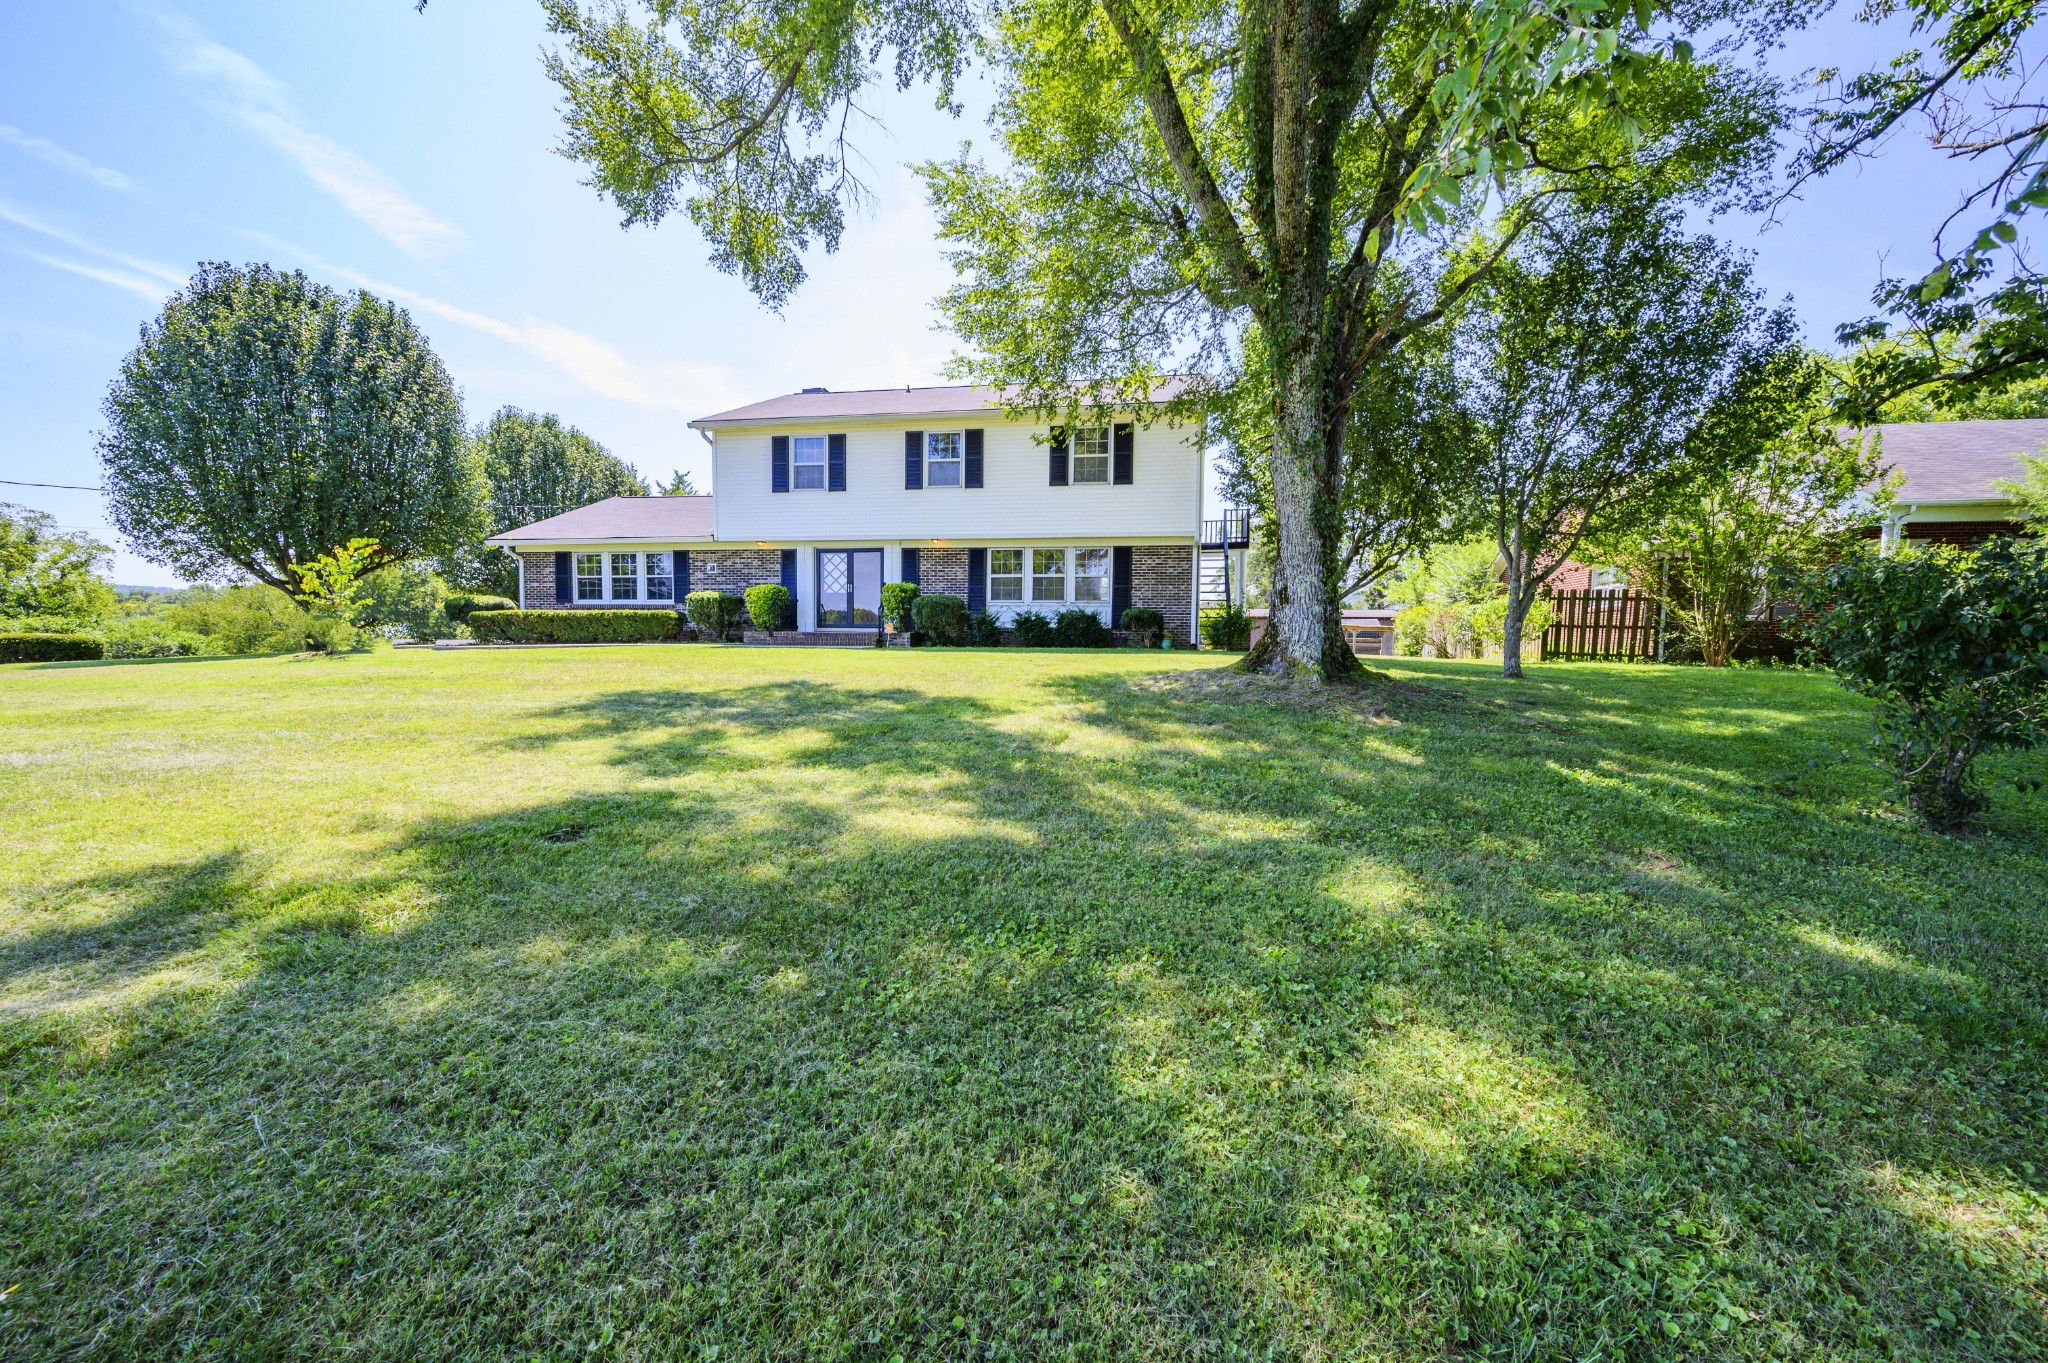 113 E Colonial St Property Photo - Woodbury, TN real estate listing